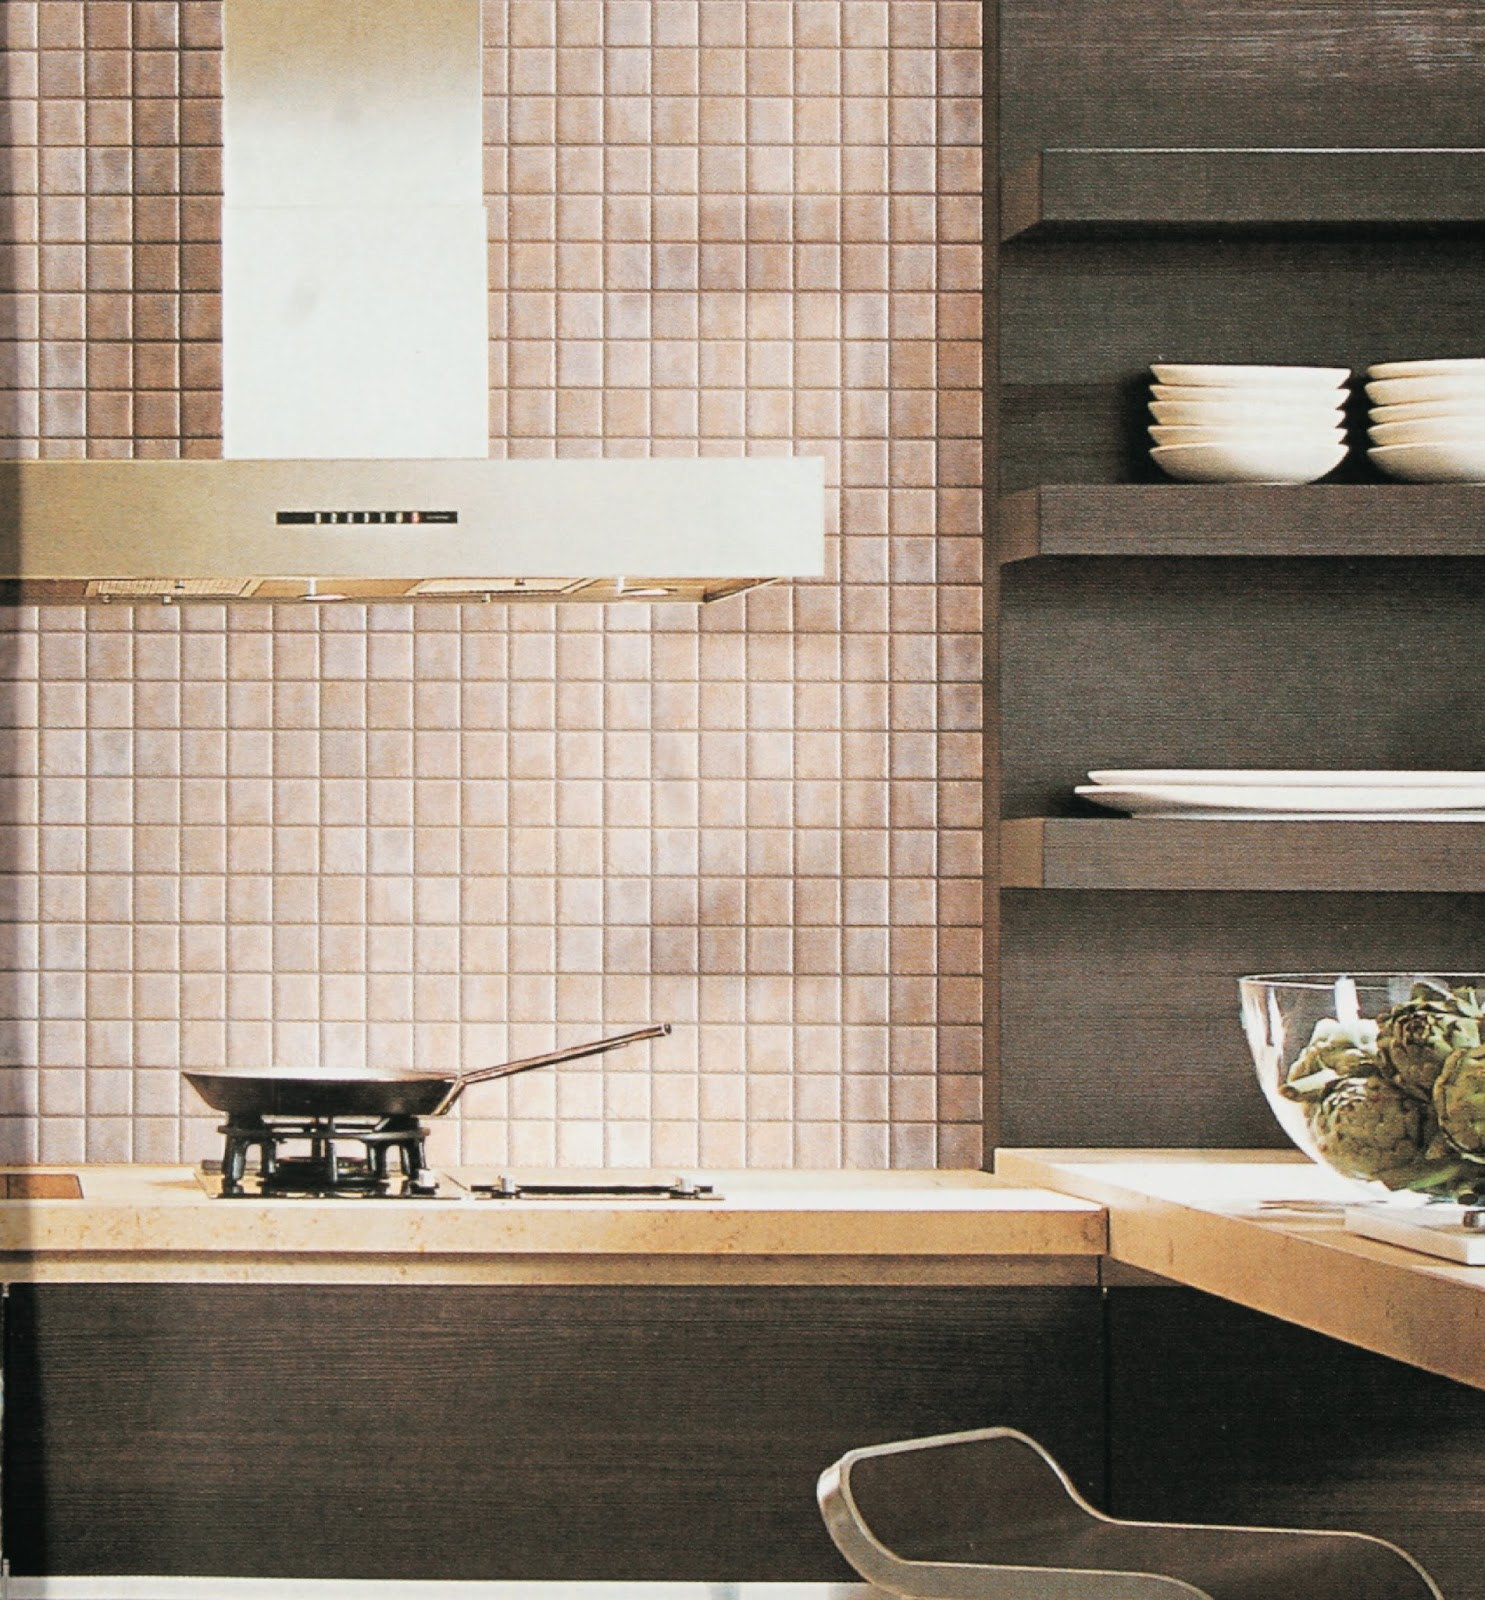 Mosaics the alternative to glass splashbacks in your kithcen - Splashback alternatives ...